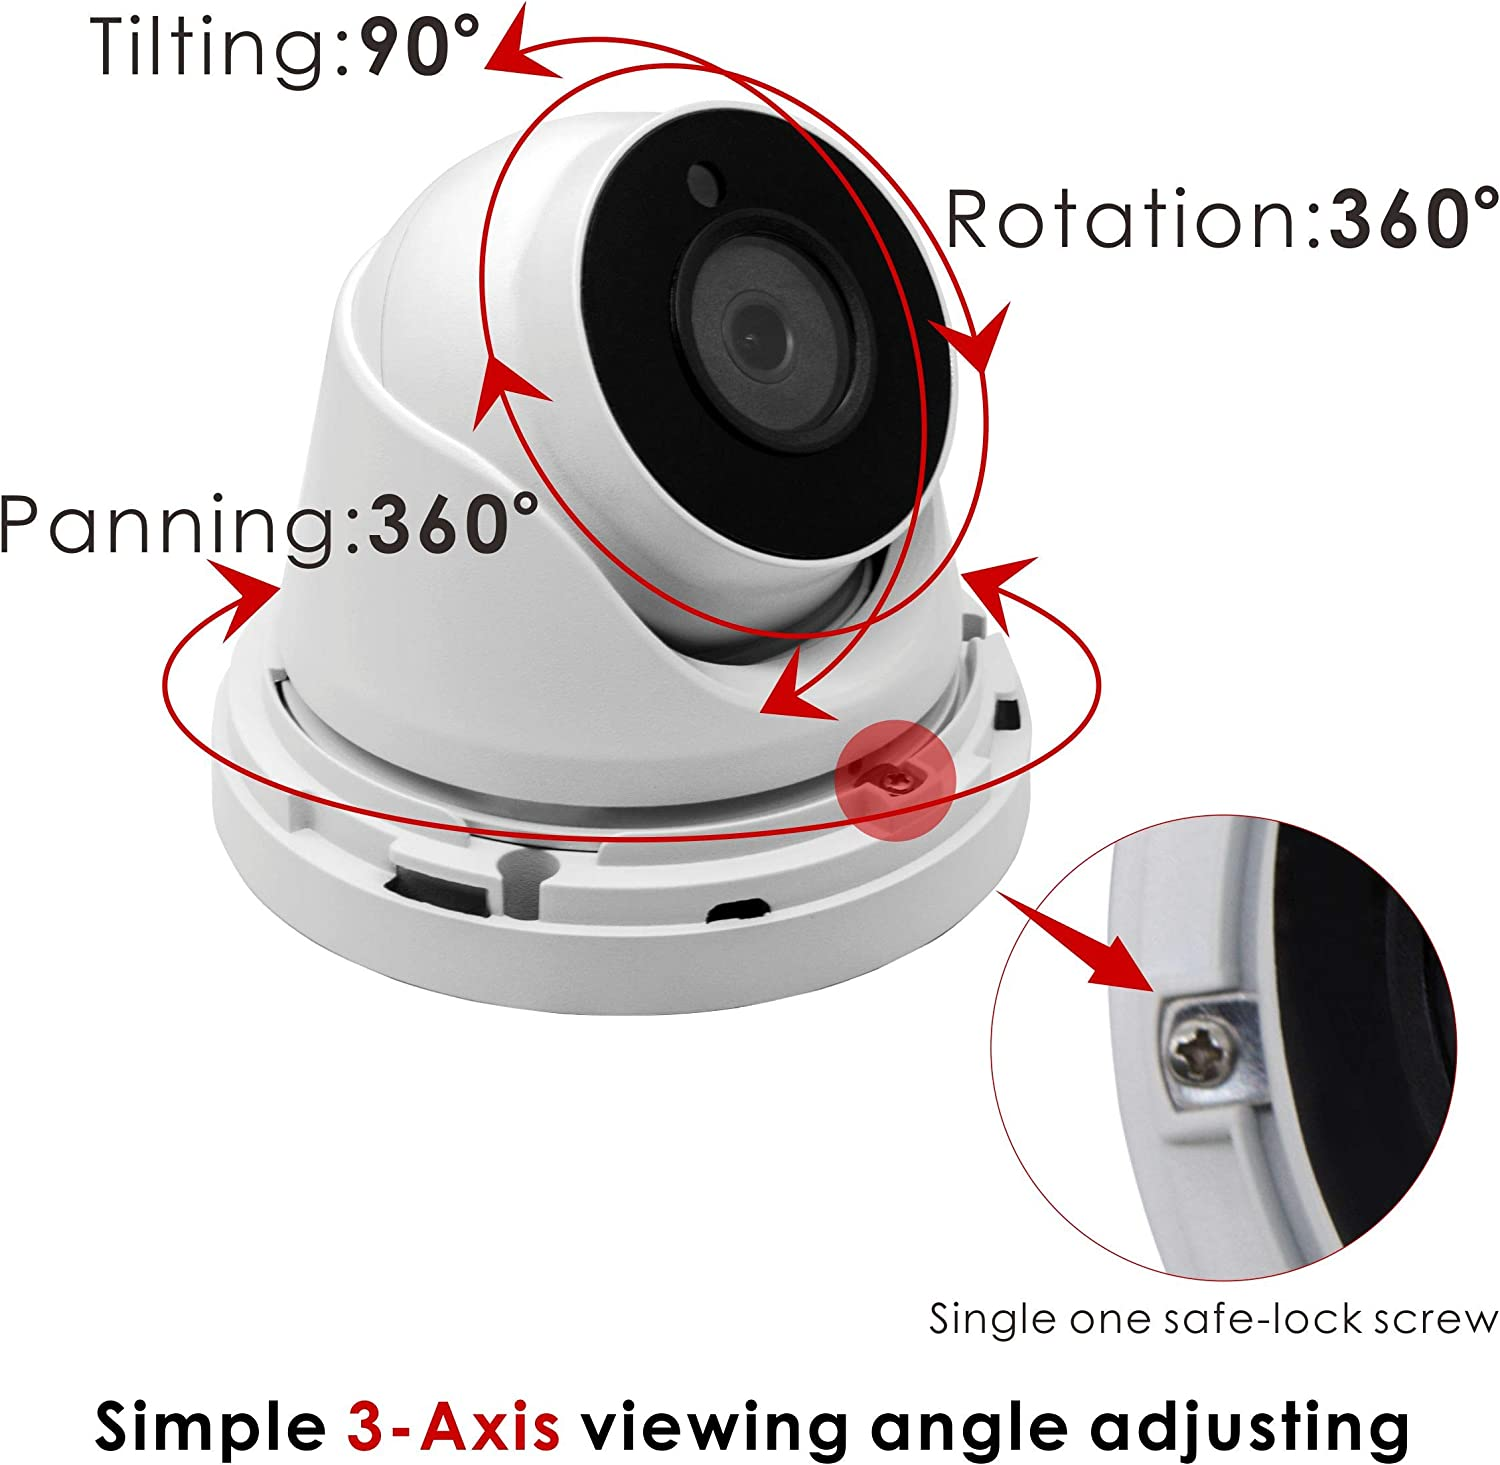 Inwerang 5Mp 4-In-1 Ahd/Cvi/Tvi/Analog Ip66 Waterproof Outdoor/Indoor Turret Dome Camera 65Ft Ir Night Vision 3.6Mm Wide Angle Lens(Compatible mit Hikvision/Dahua 5Mp 20Fps Dvrs)